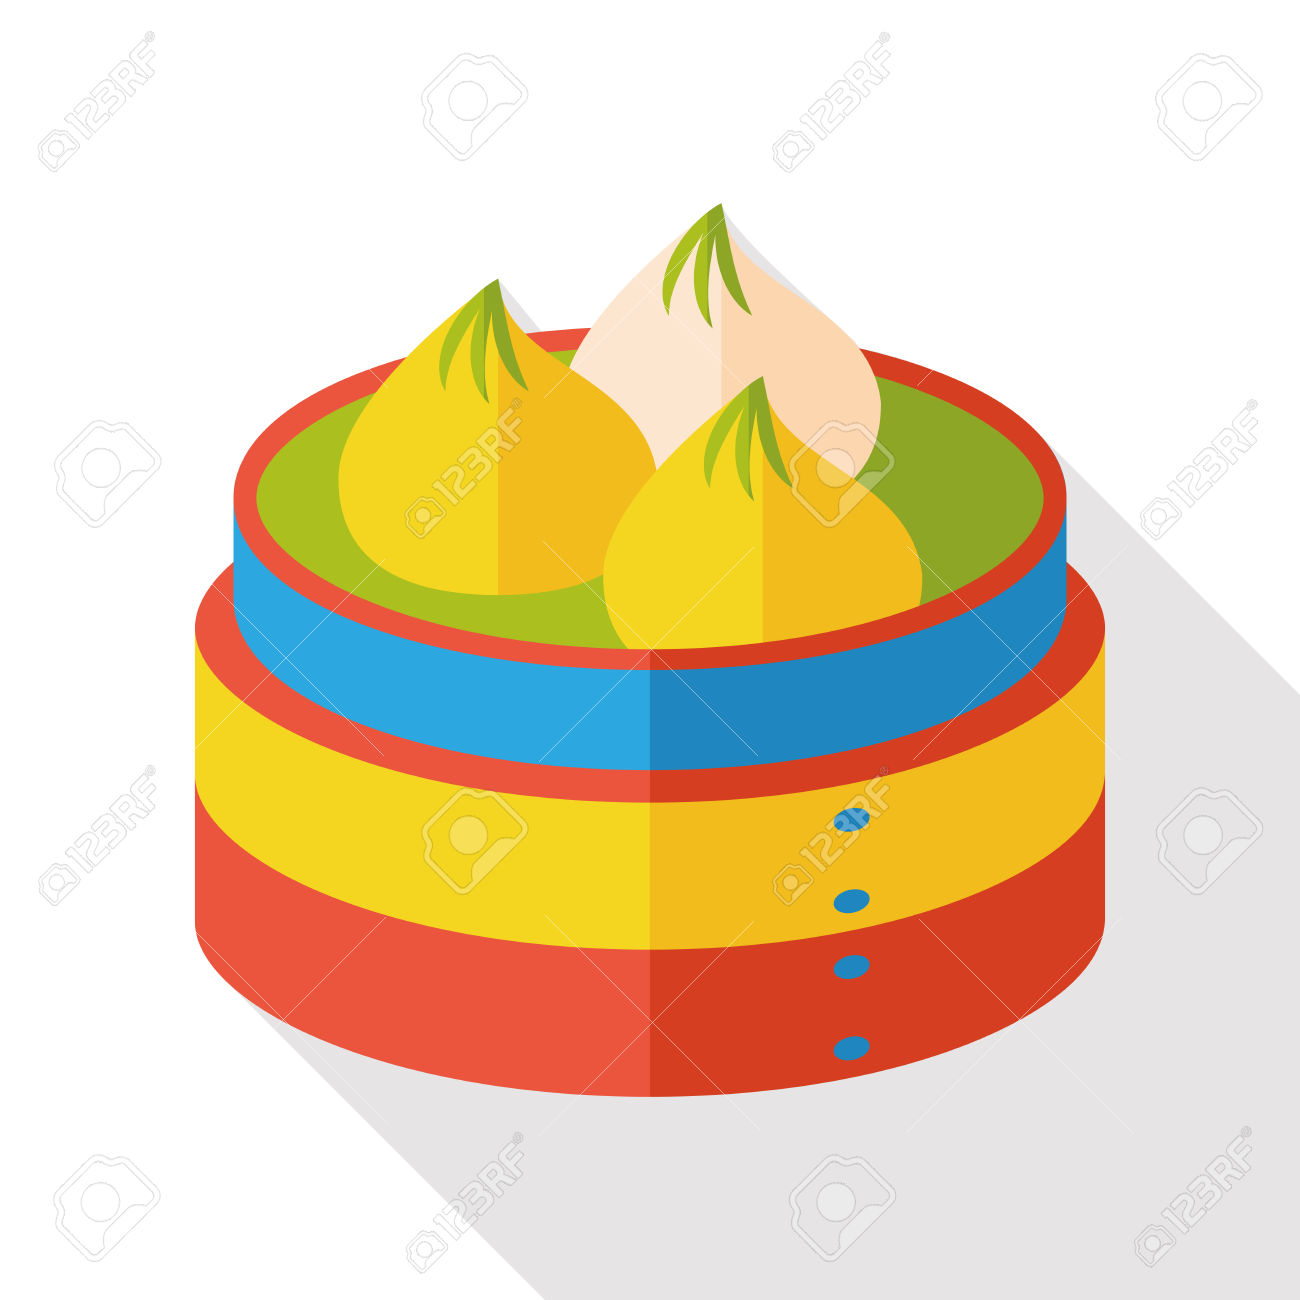 Steamed Stuffed Bun Flat Icon Royalty Free Cliparts, Vectors, And.